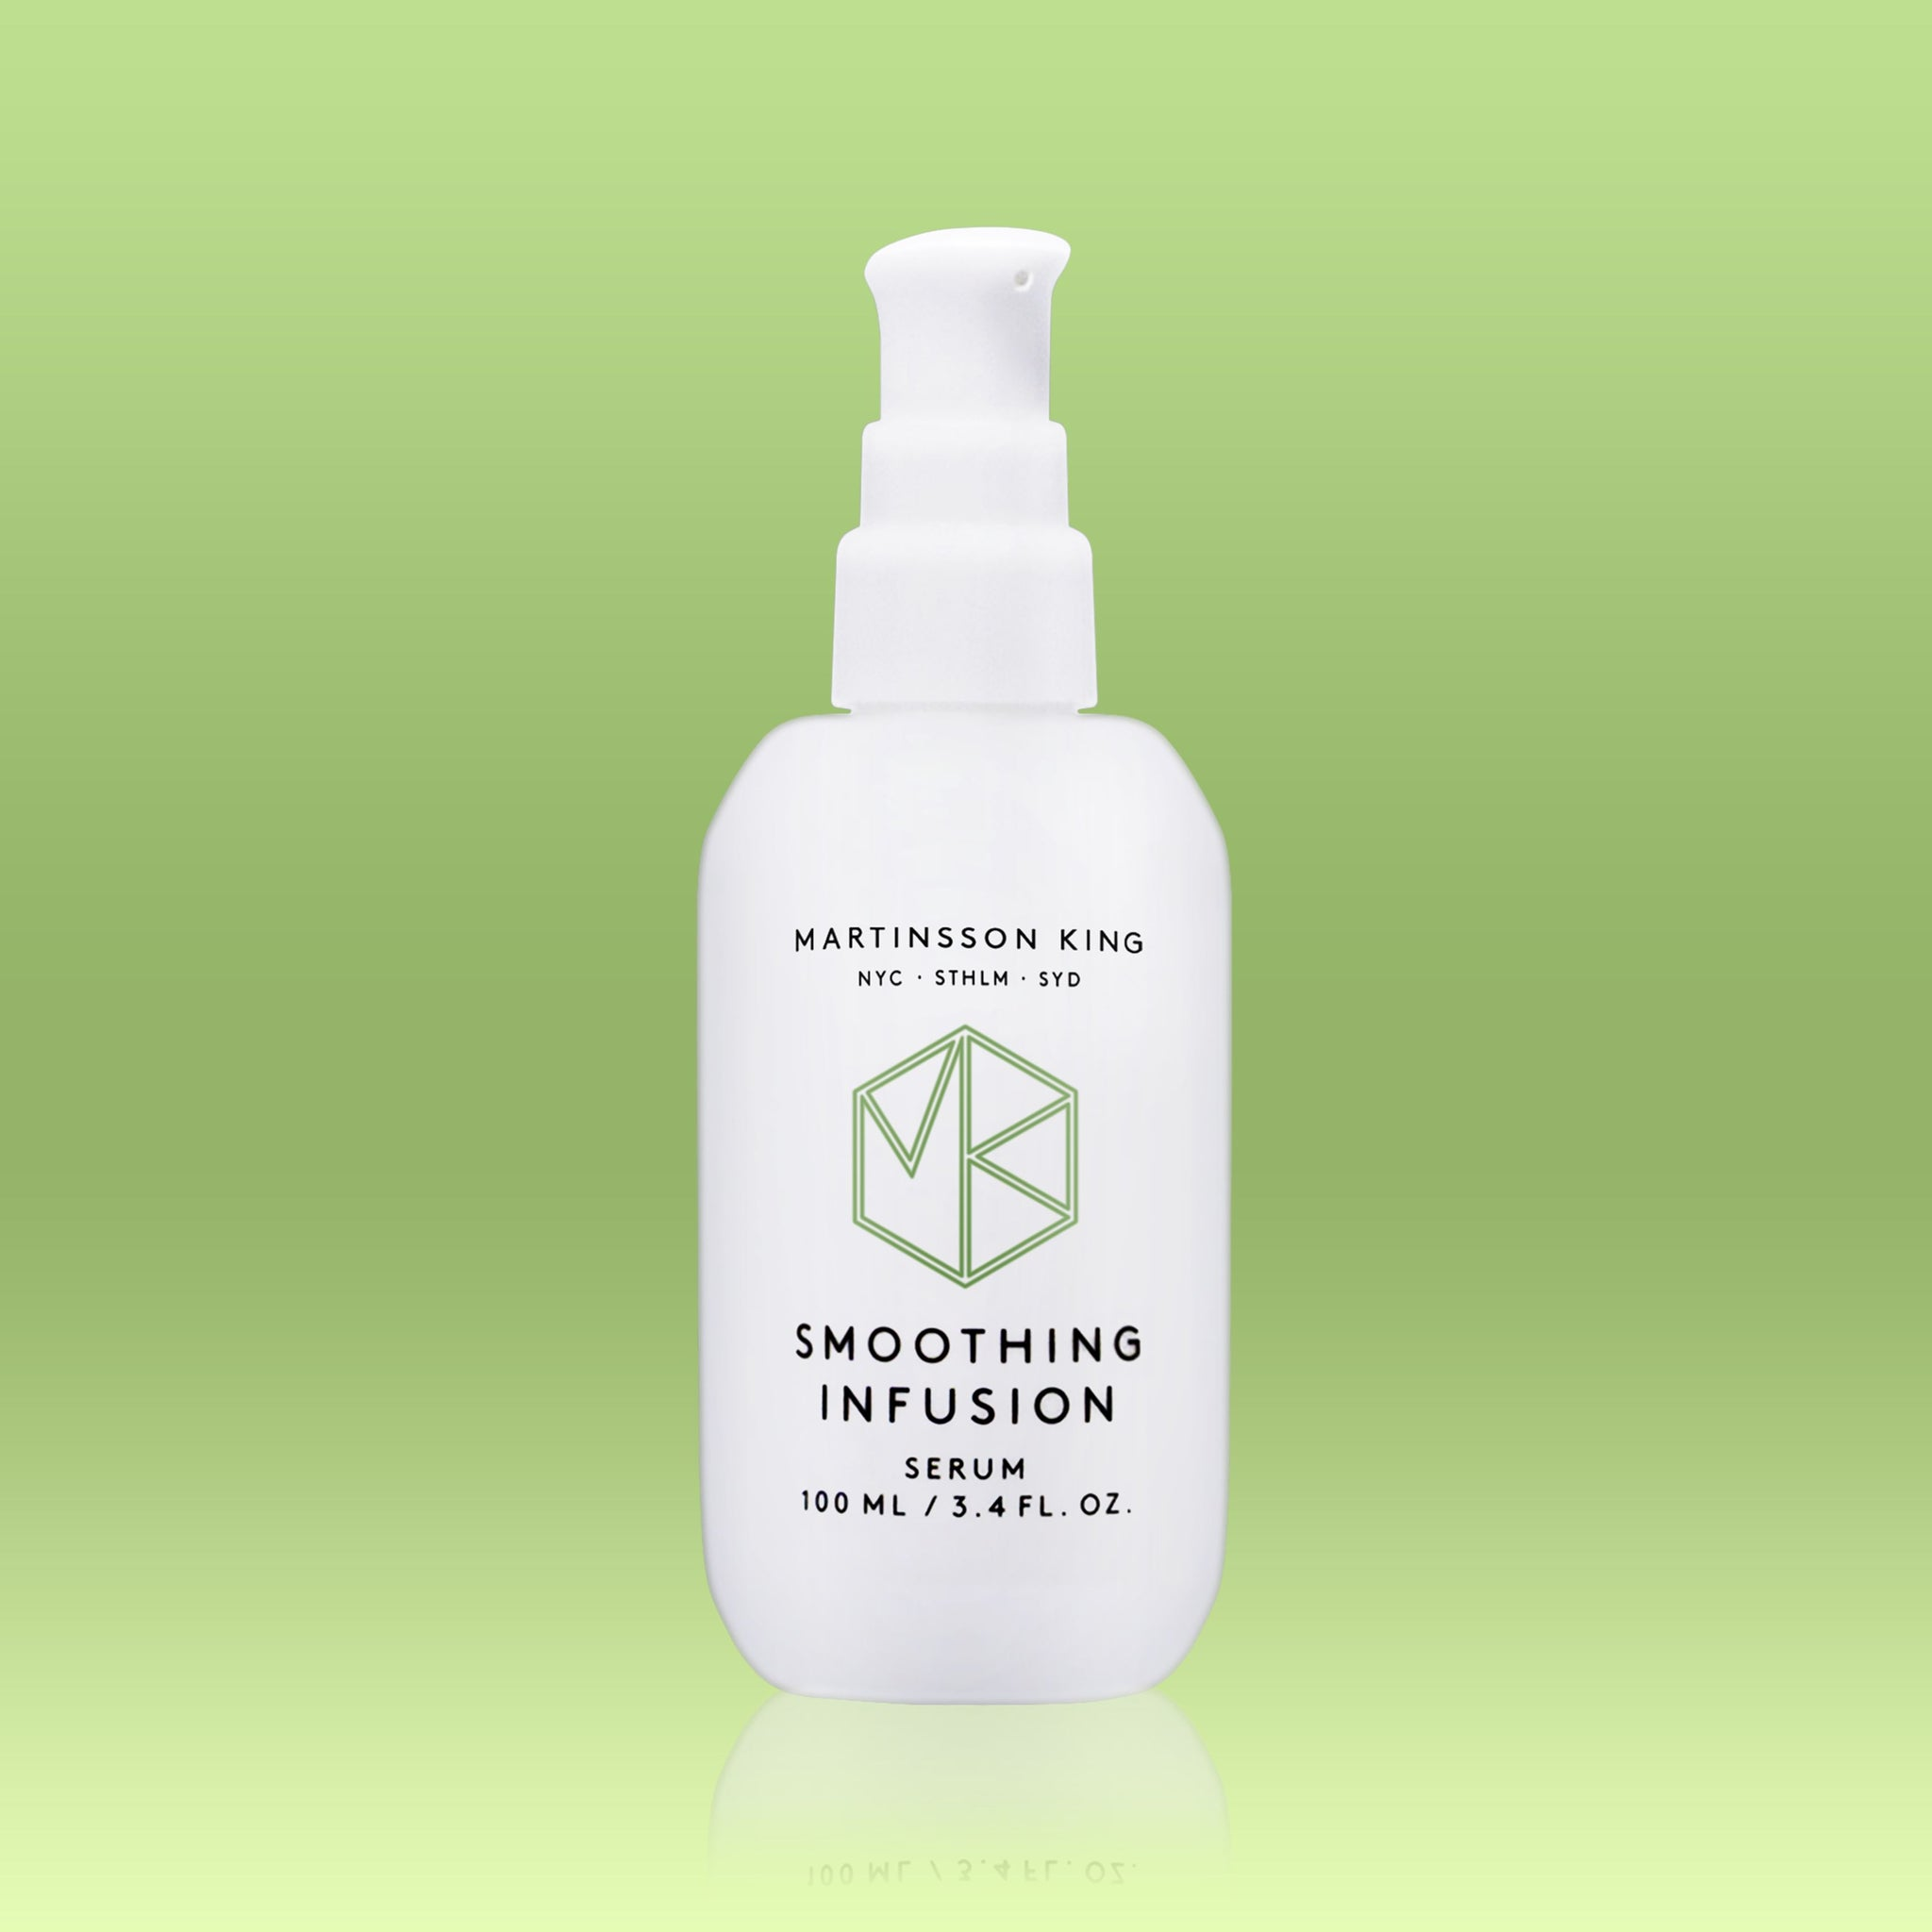 Smoothing Infusion serum serum 100 ml (3.4 fl.oz) MARTINSSON KING